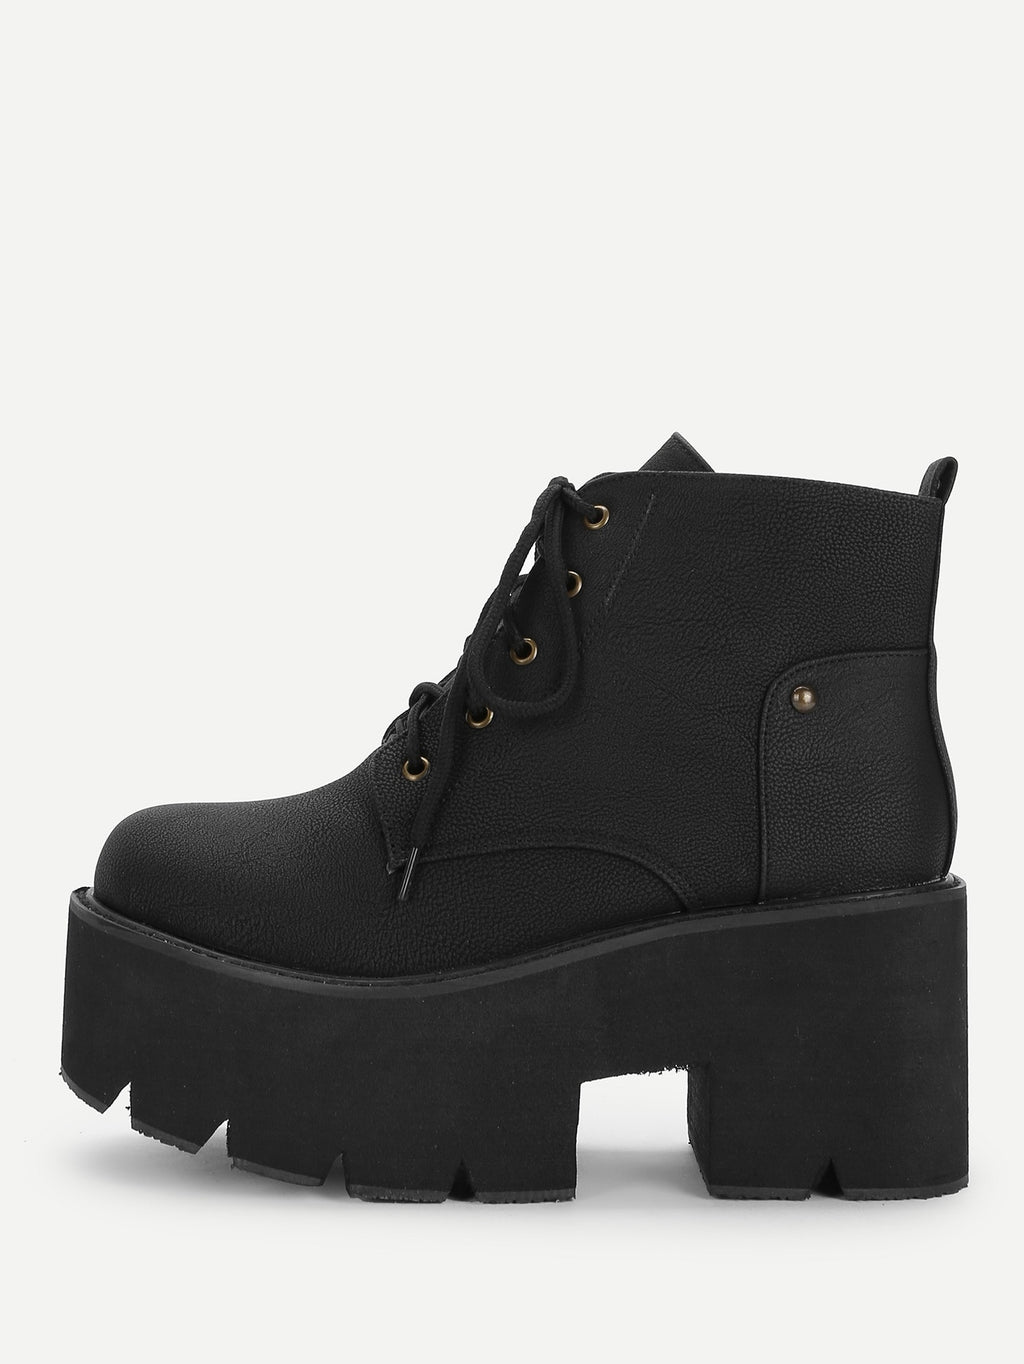 Women Boots - Lace-Up Platform Boots